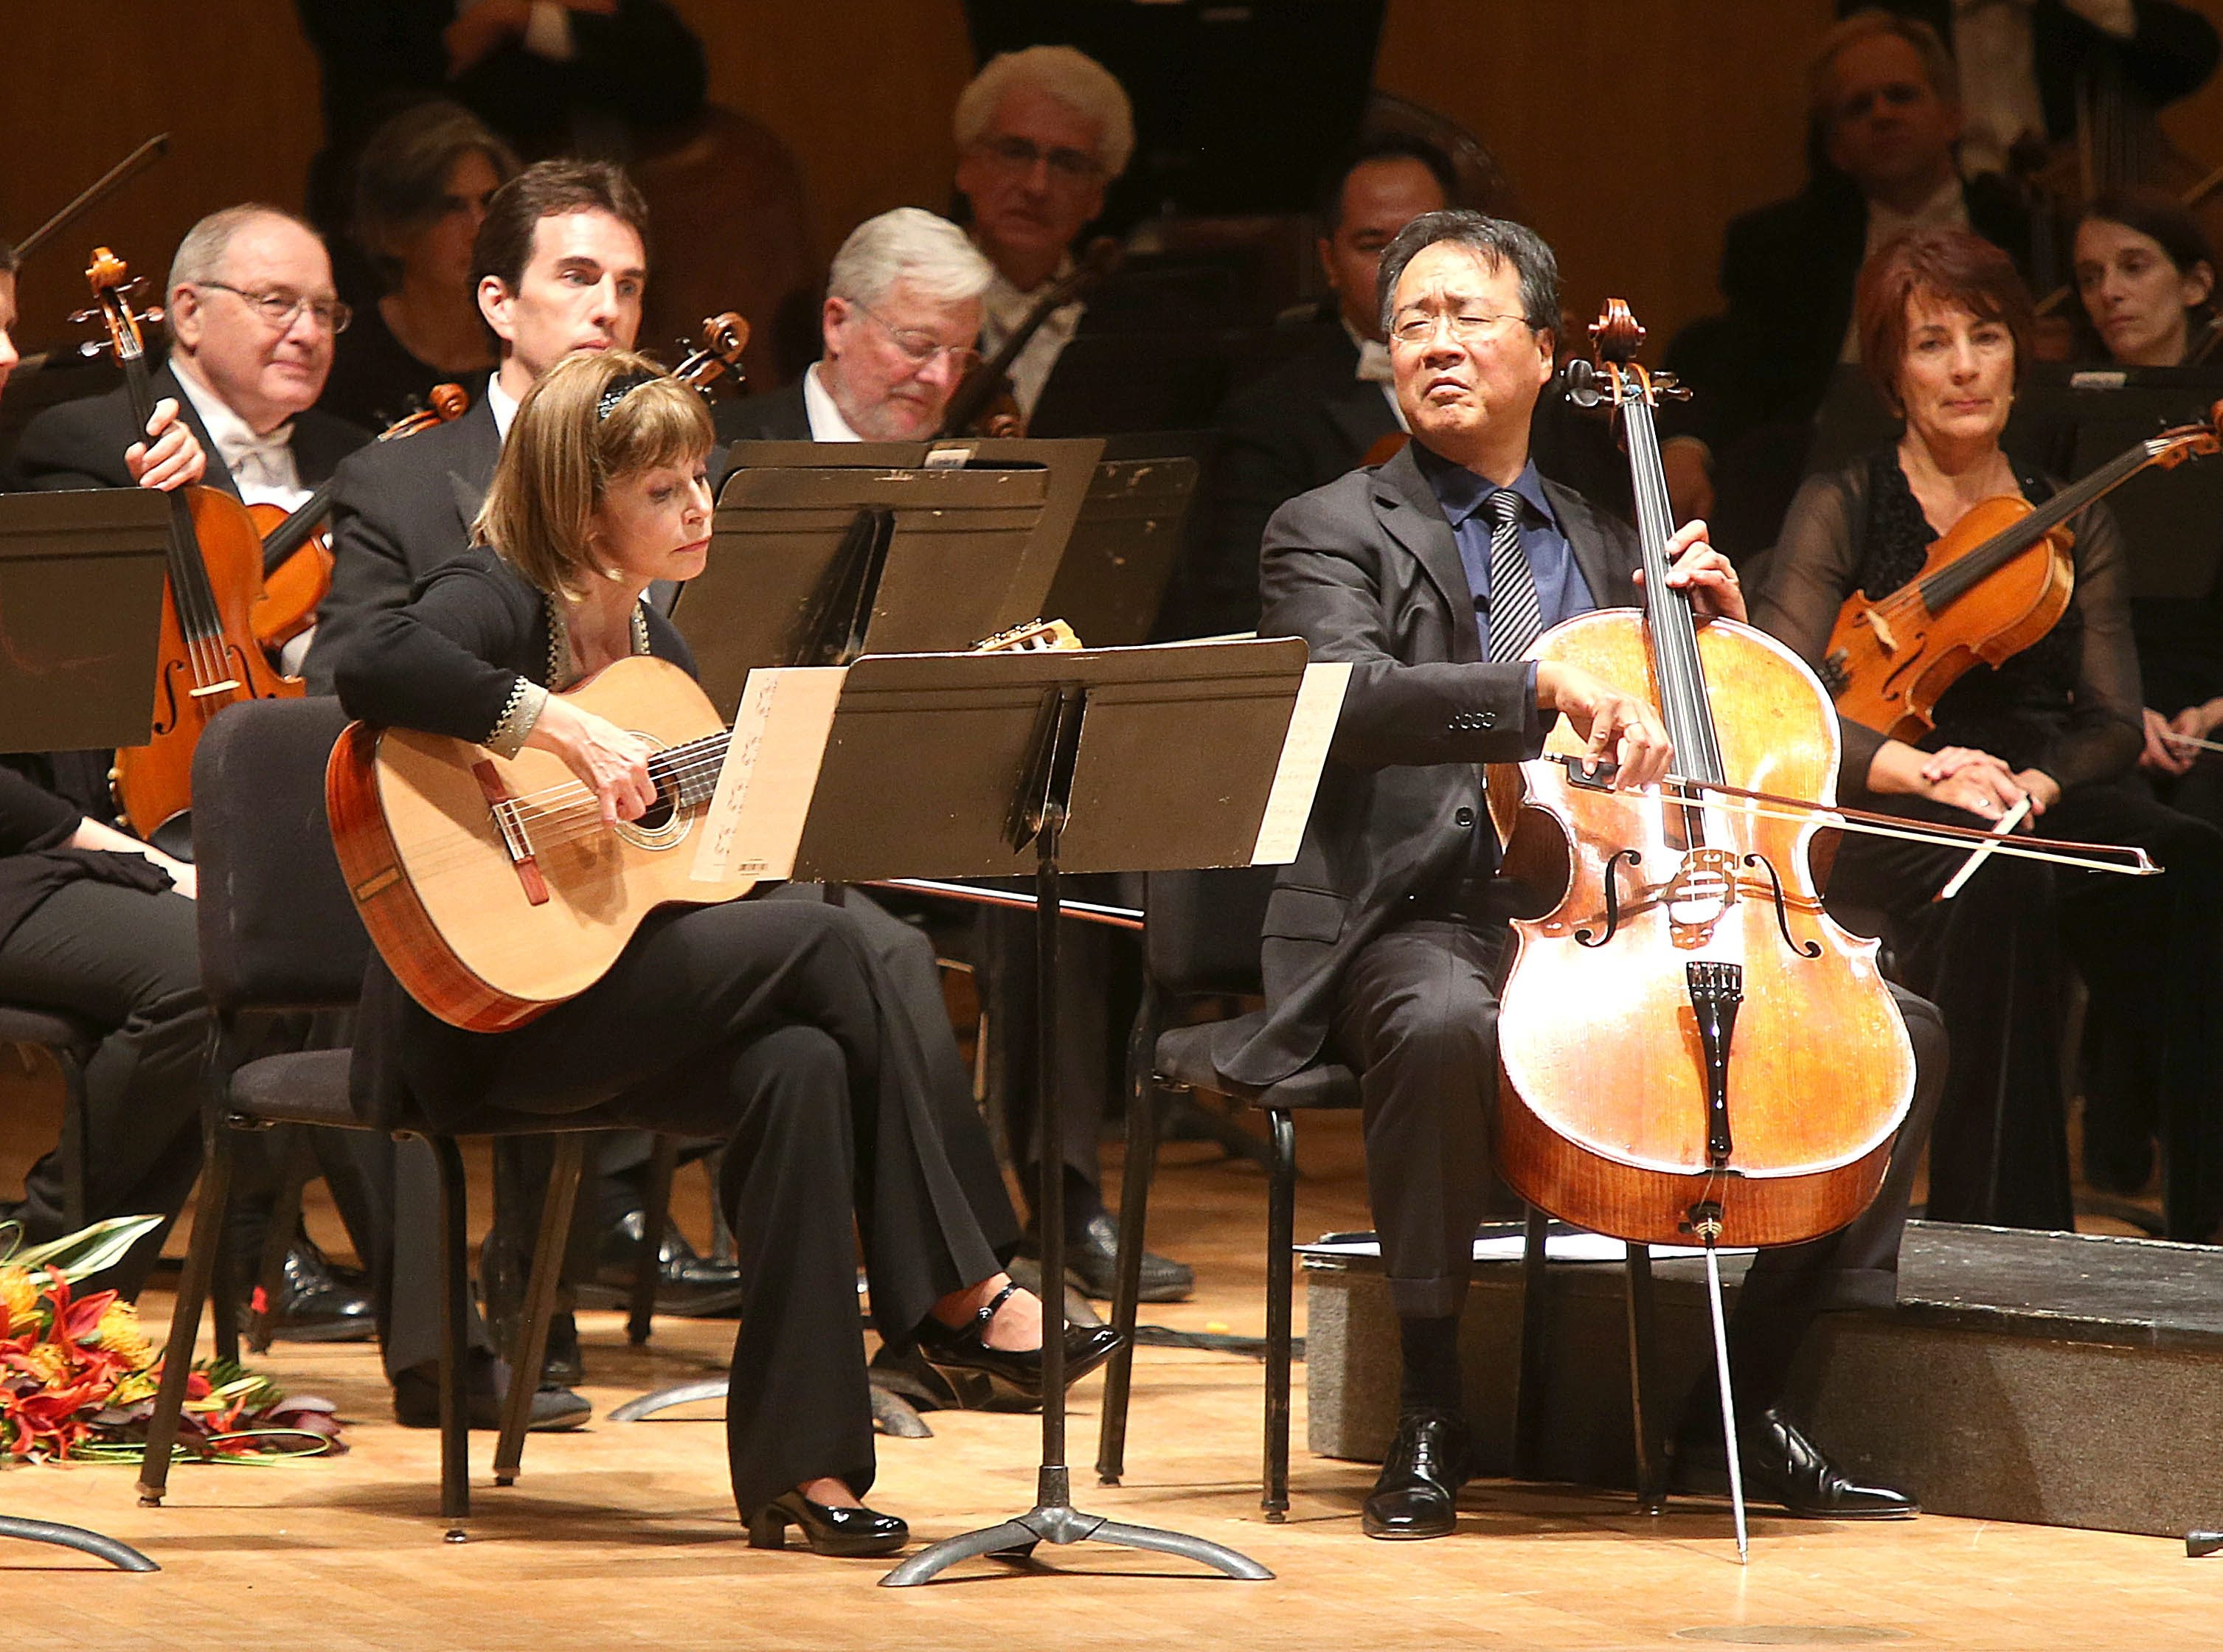 The crowd at the Buffalo Philharmonic Orchestra's opening concert Wednesday got a surprise in the first encore: BPO music director JoAnn Falletta on guitar accompanying superstar cellist Yo Yo Ma in Heitor Villa-Lobos' Bachianas Brasileiras, No. 5.